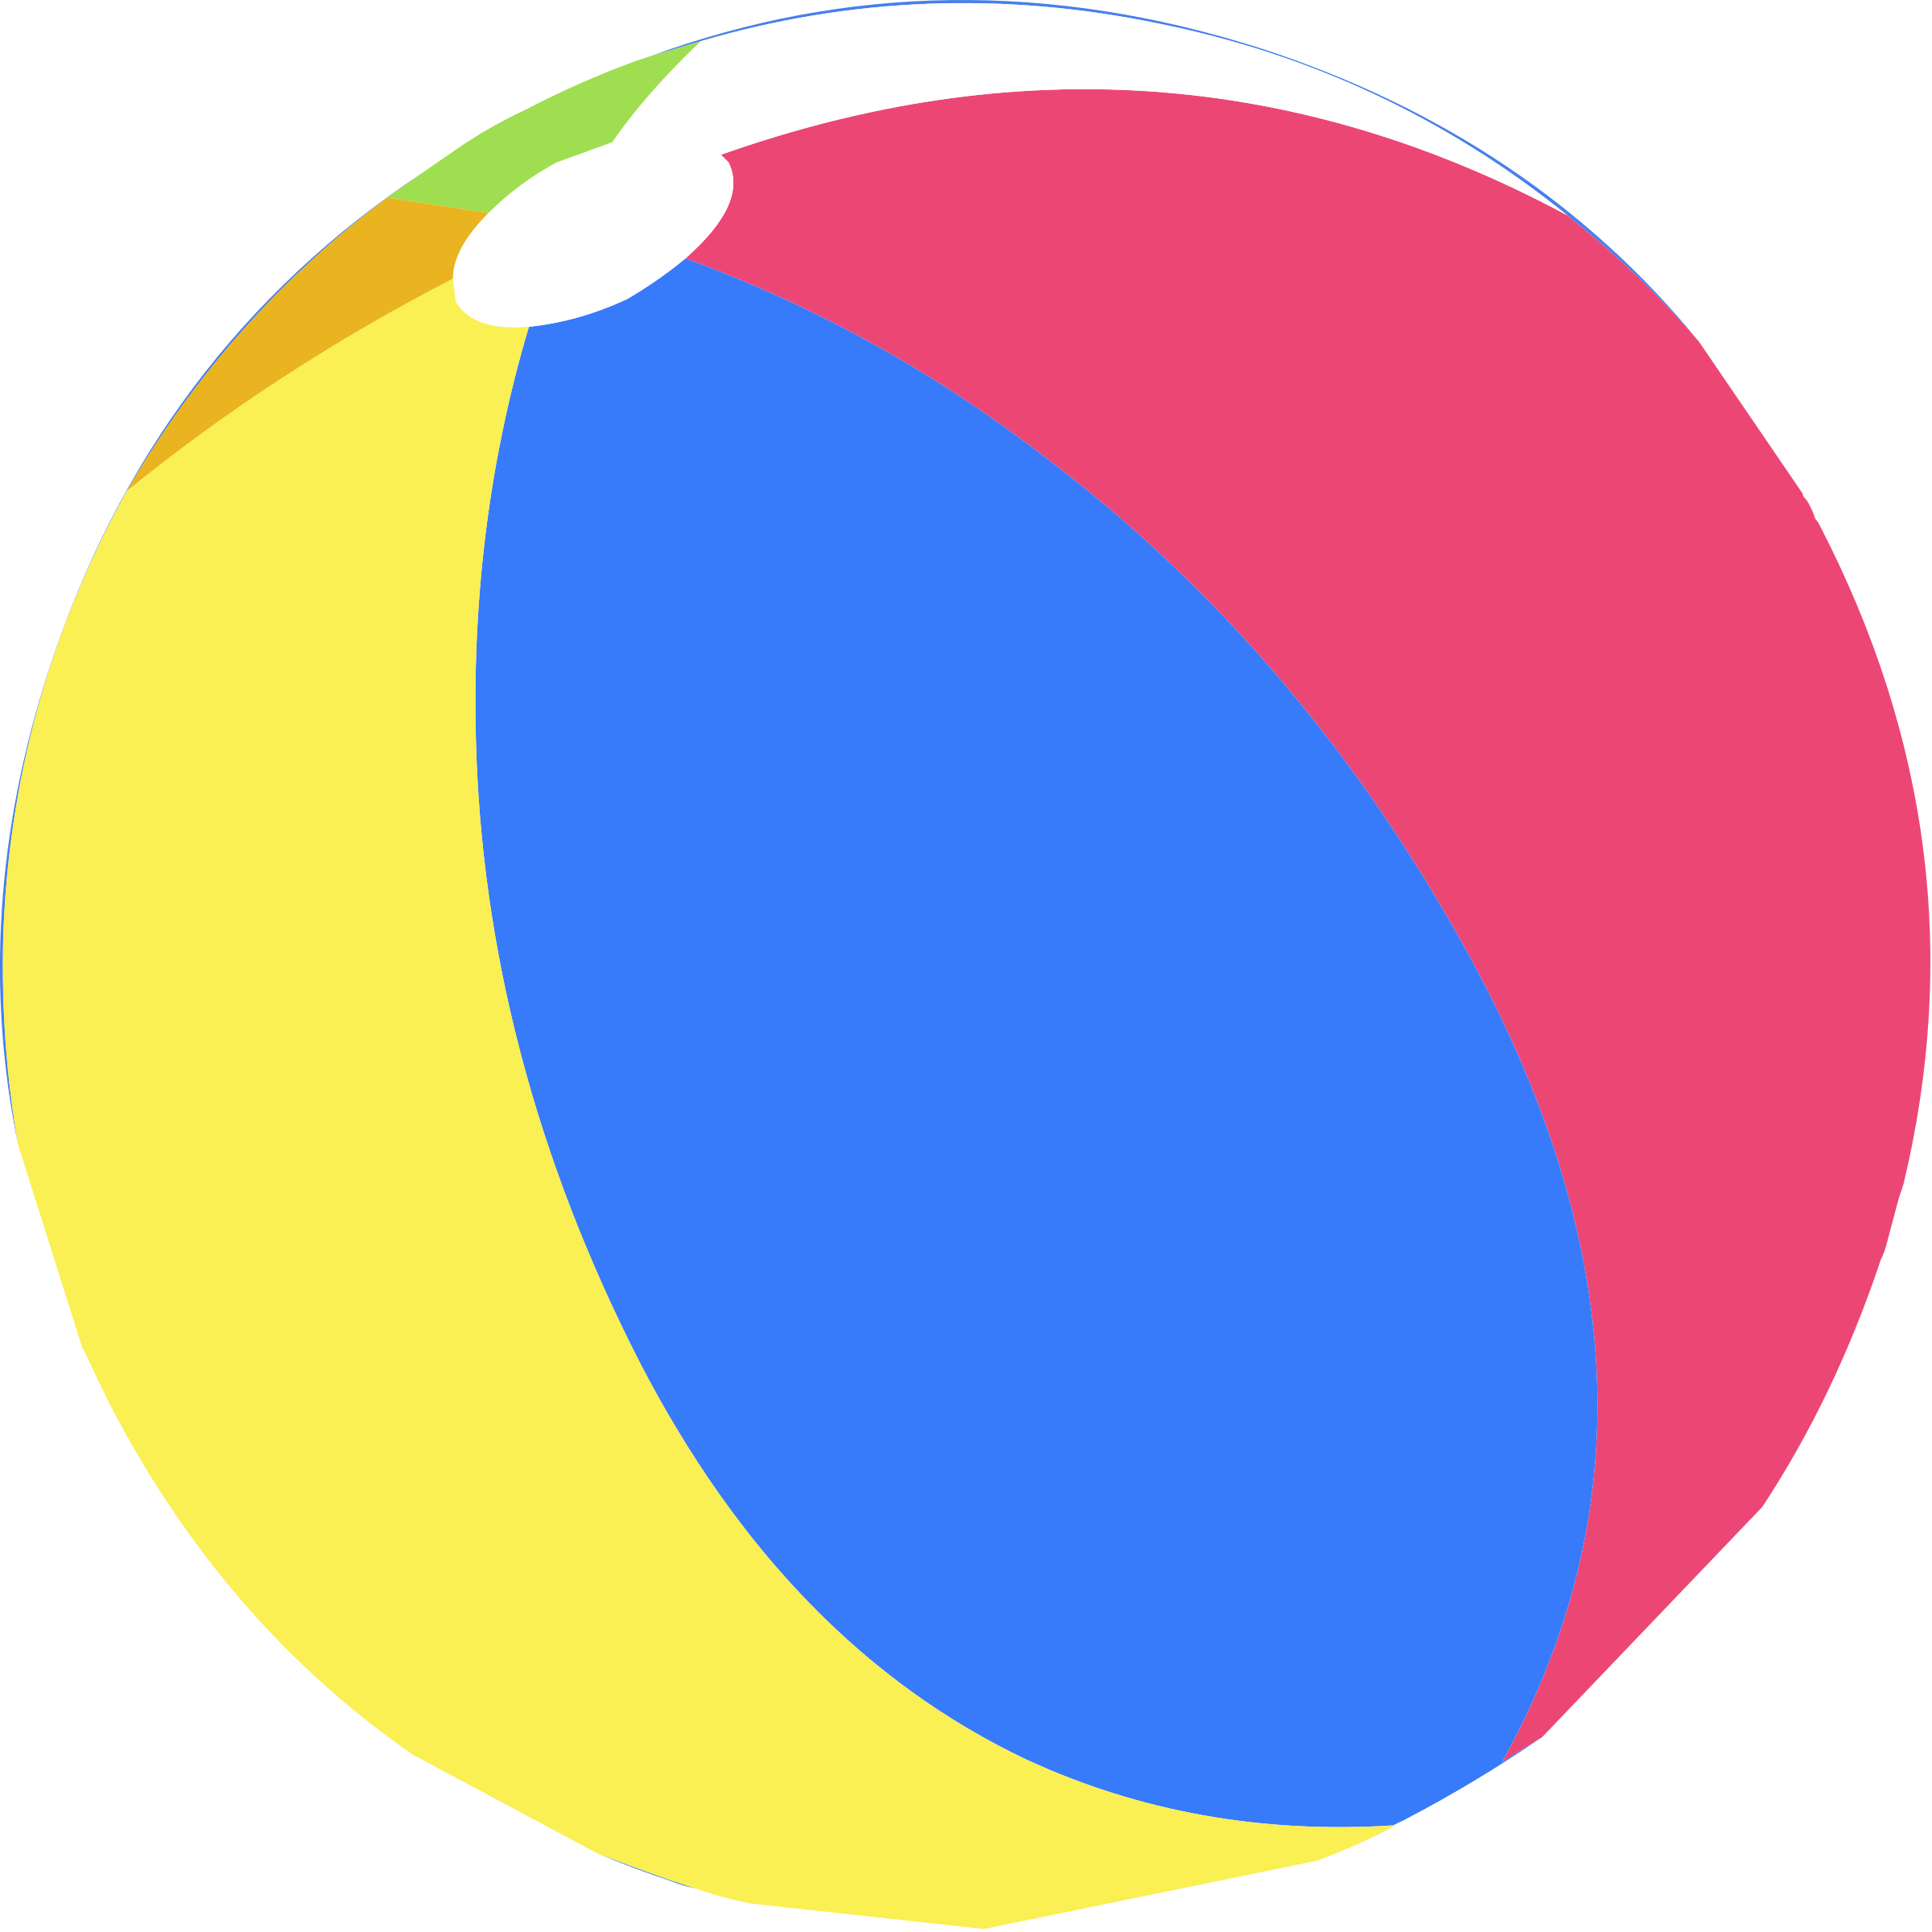 Beach ball Clip art.